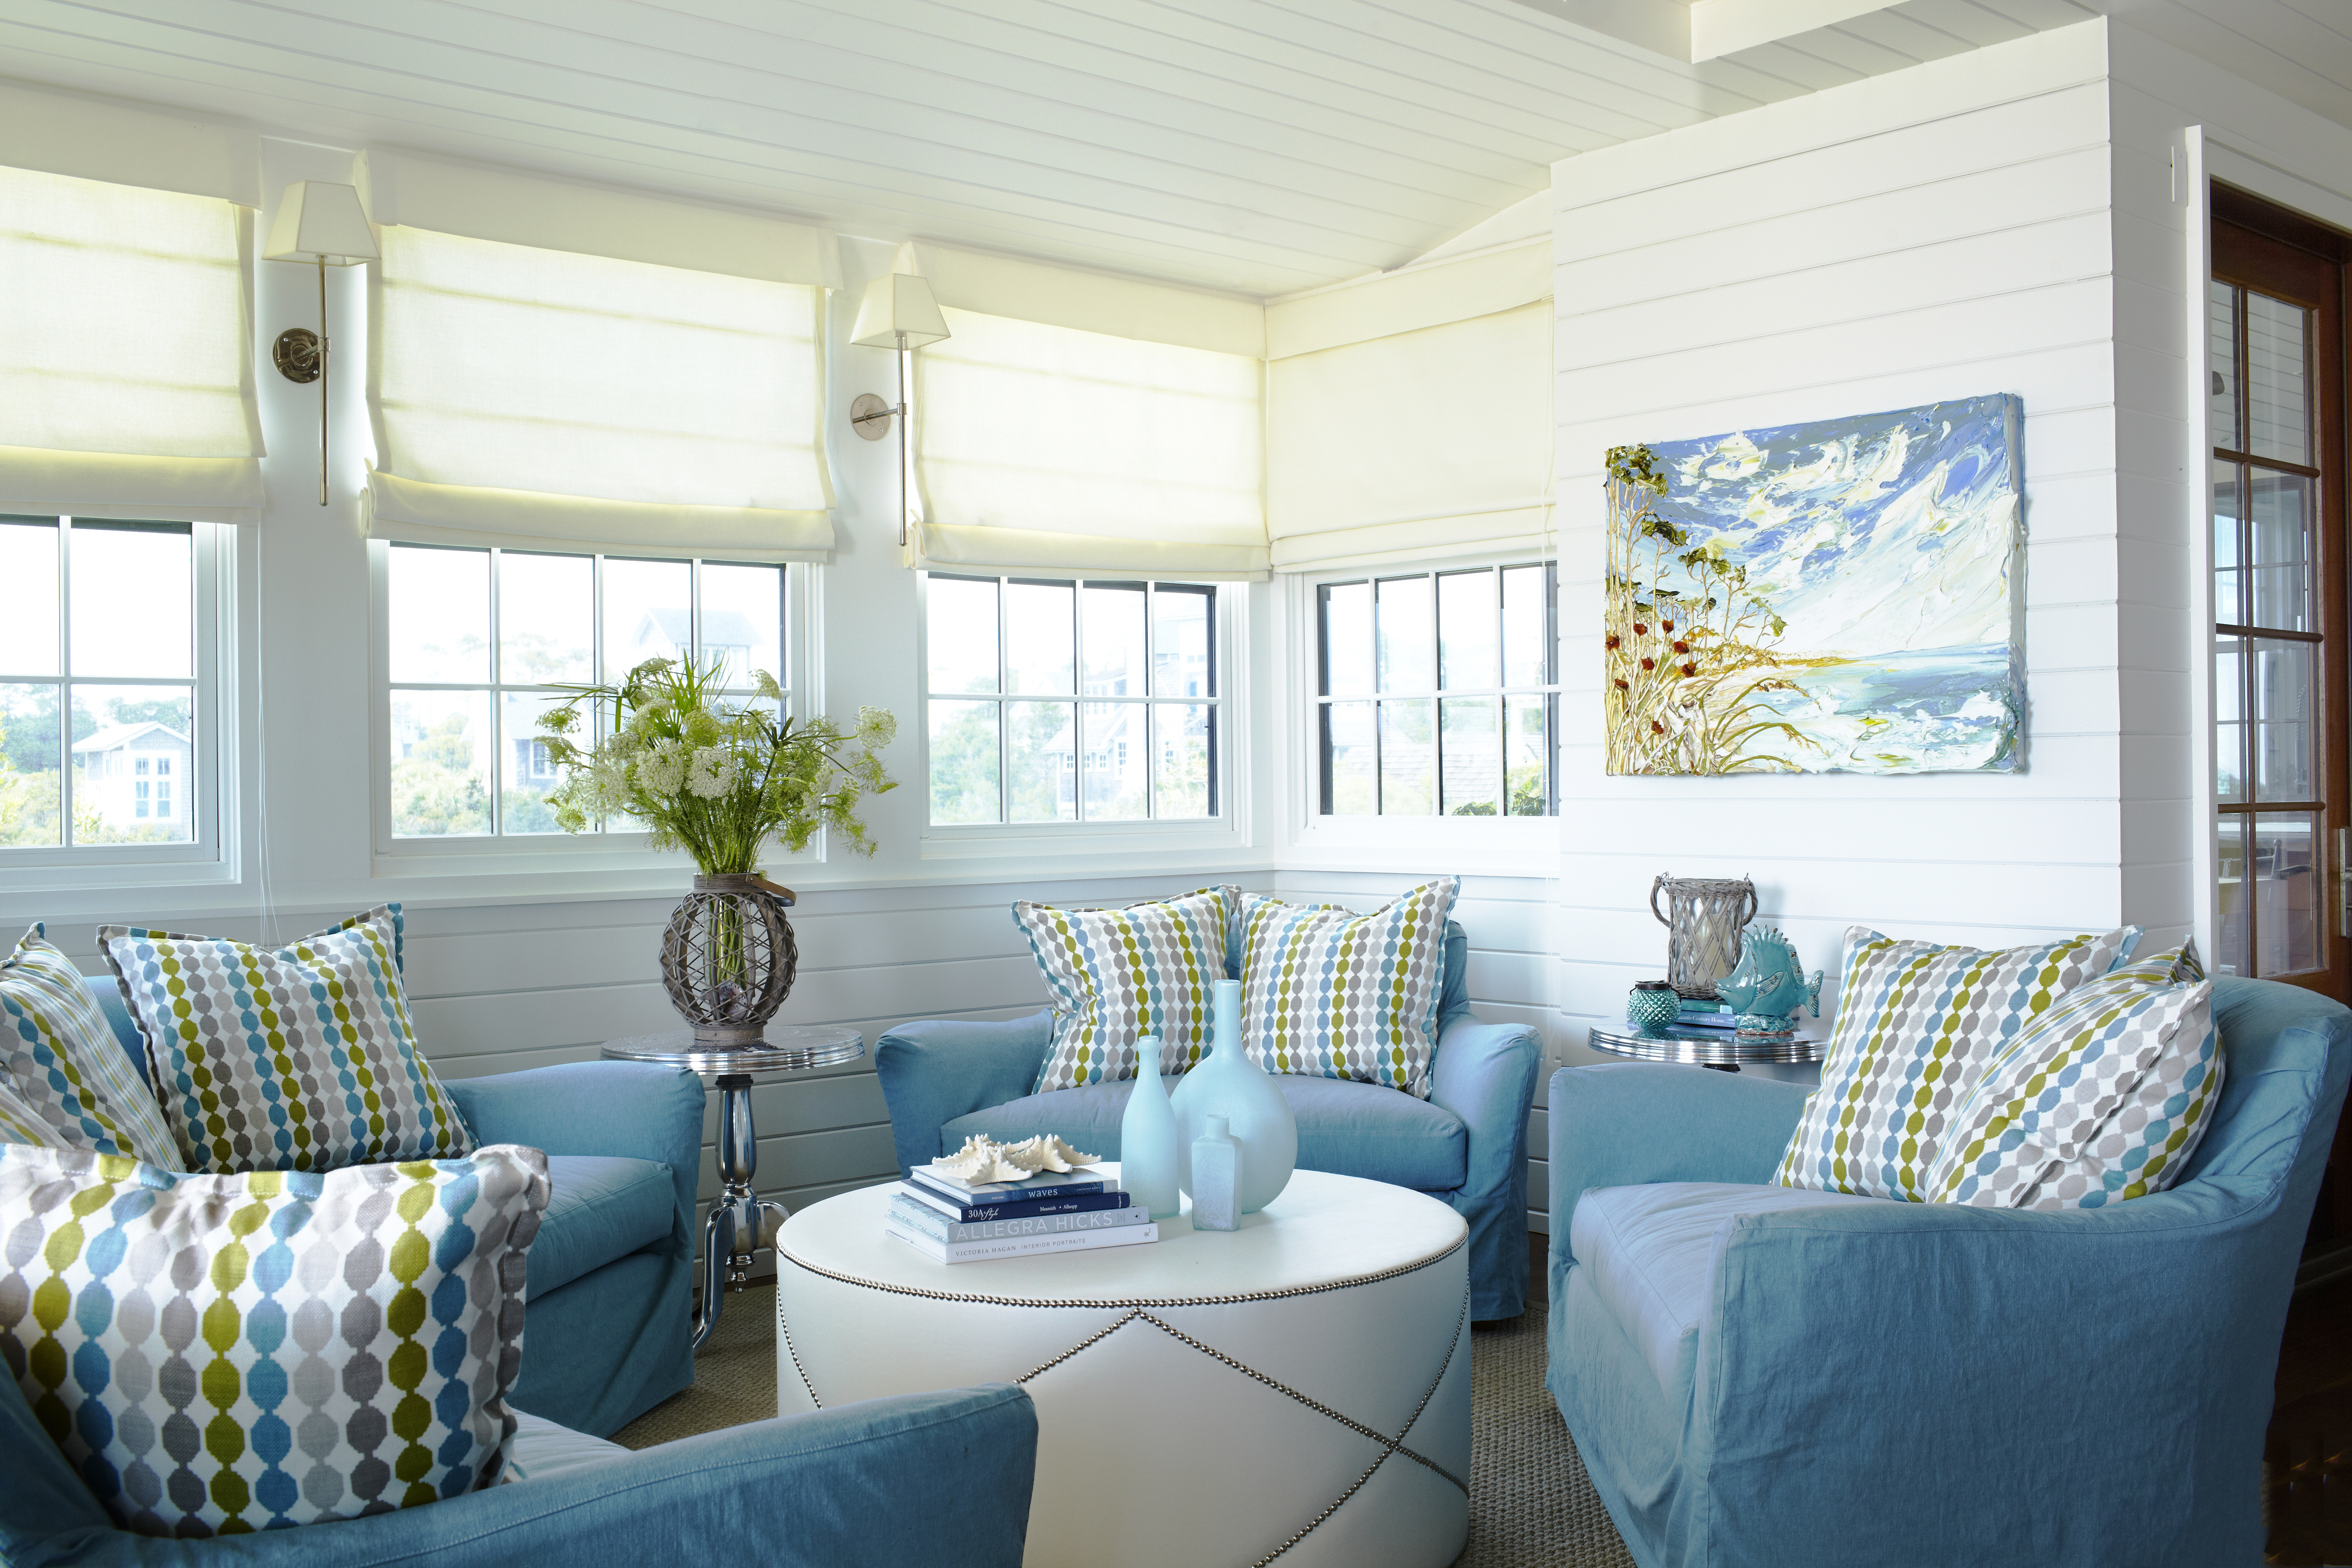 lounge furniture interiors modern home ideas size of ocean living designs style stanley room furnishings cottage decorating full family beach rooms livings beachy coastal